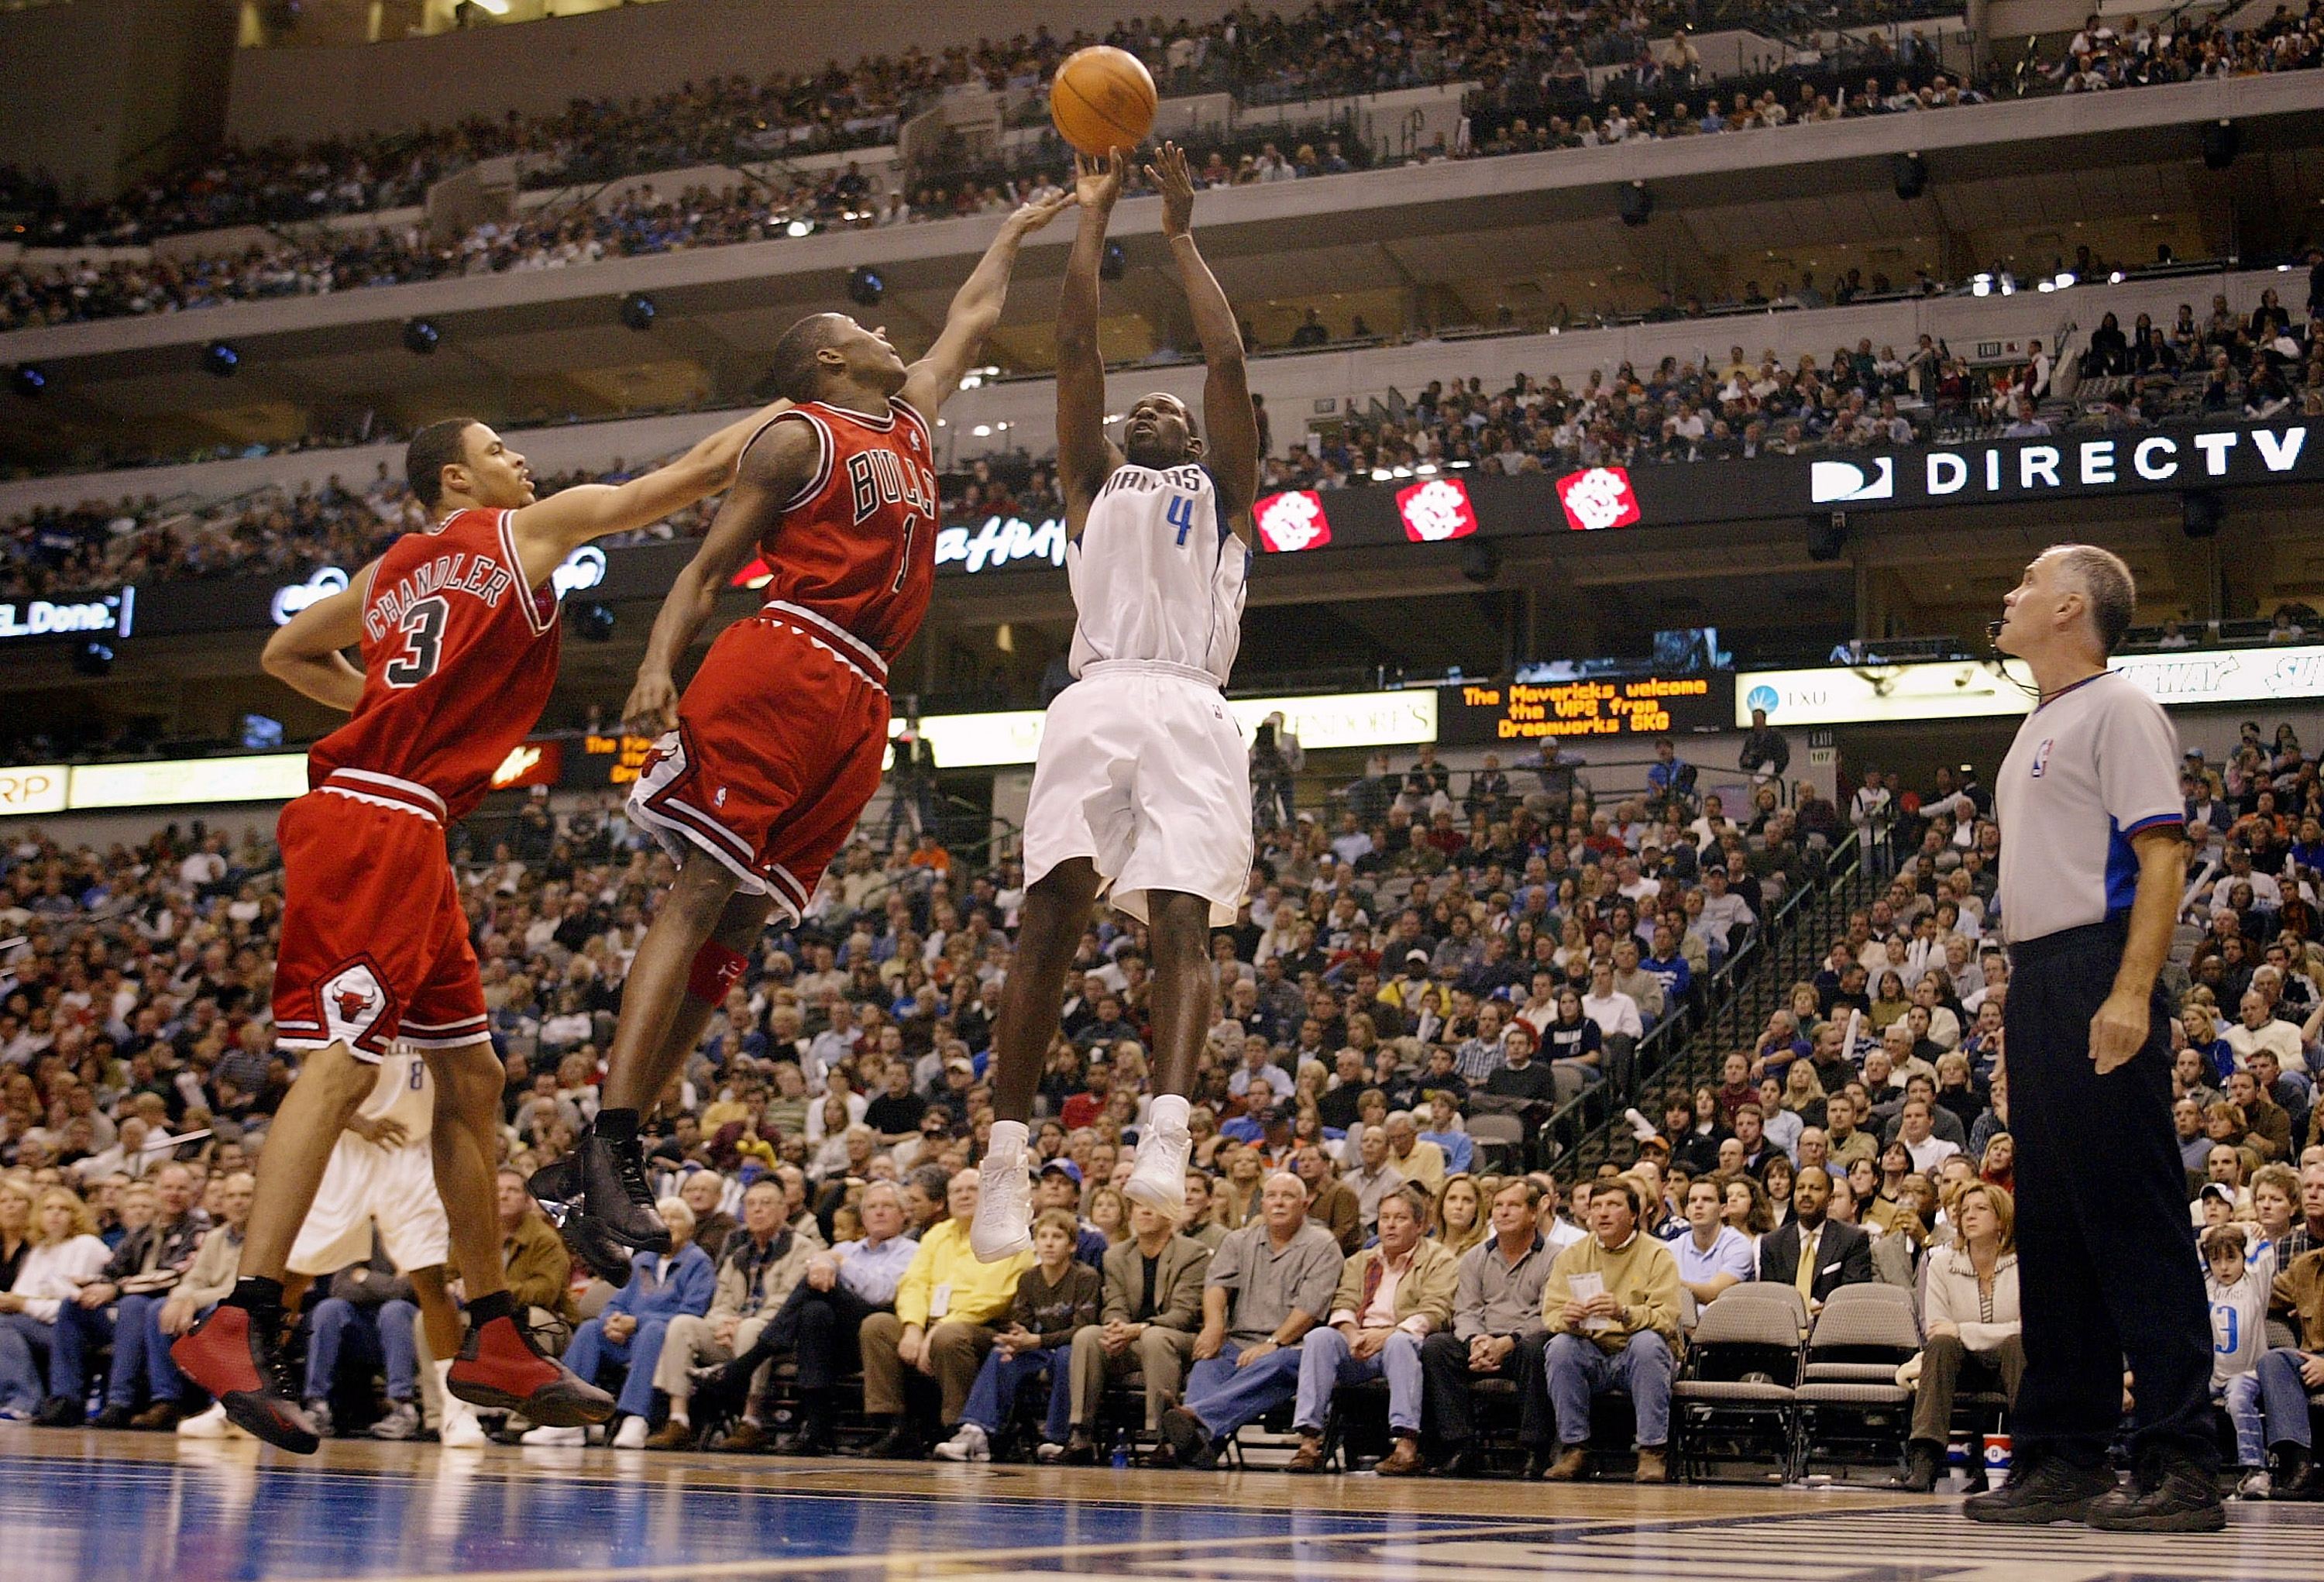 DALLAS - NOVEMBER 25: Guard Michael Finley #4 of the Dallas Mavericks puts up a shot against Jamal Crawford #1 and Tyson Chandler #3 of the Chicago Bulls in the second quarter November 25, 2003 at the American Airlines Center in Dallas, Texas. NOTE TO USER: User expressly acknowledges and agrees that, by downloading and/or using this Photograph, User is consenting to the terms and conditions of the Getty Images License Agreement.